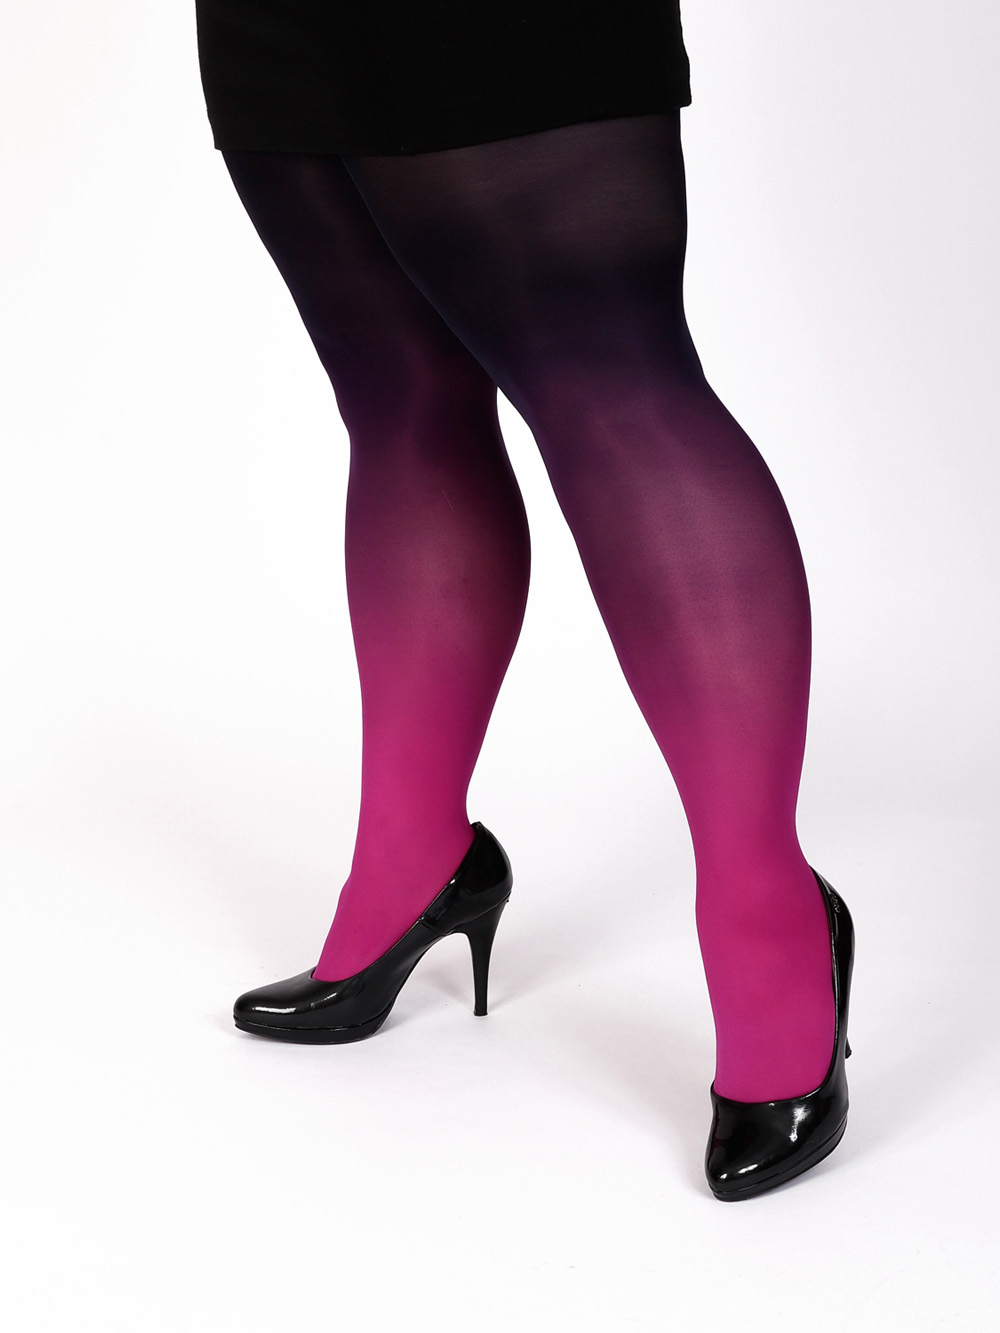 Plus Size Magenta-black Tights